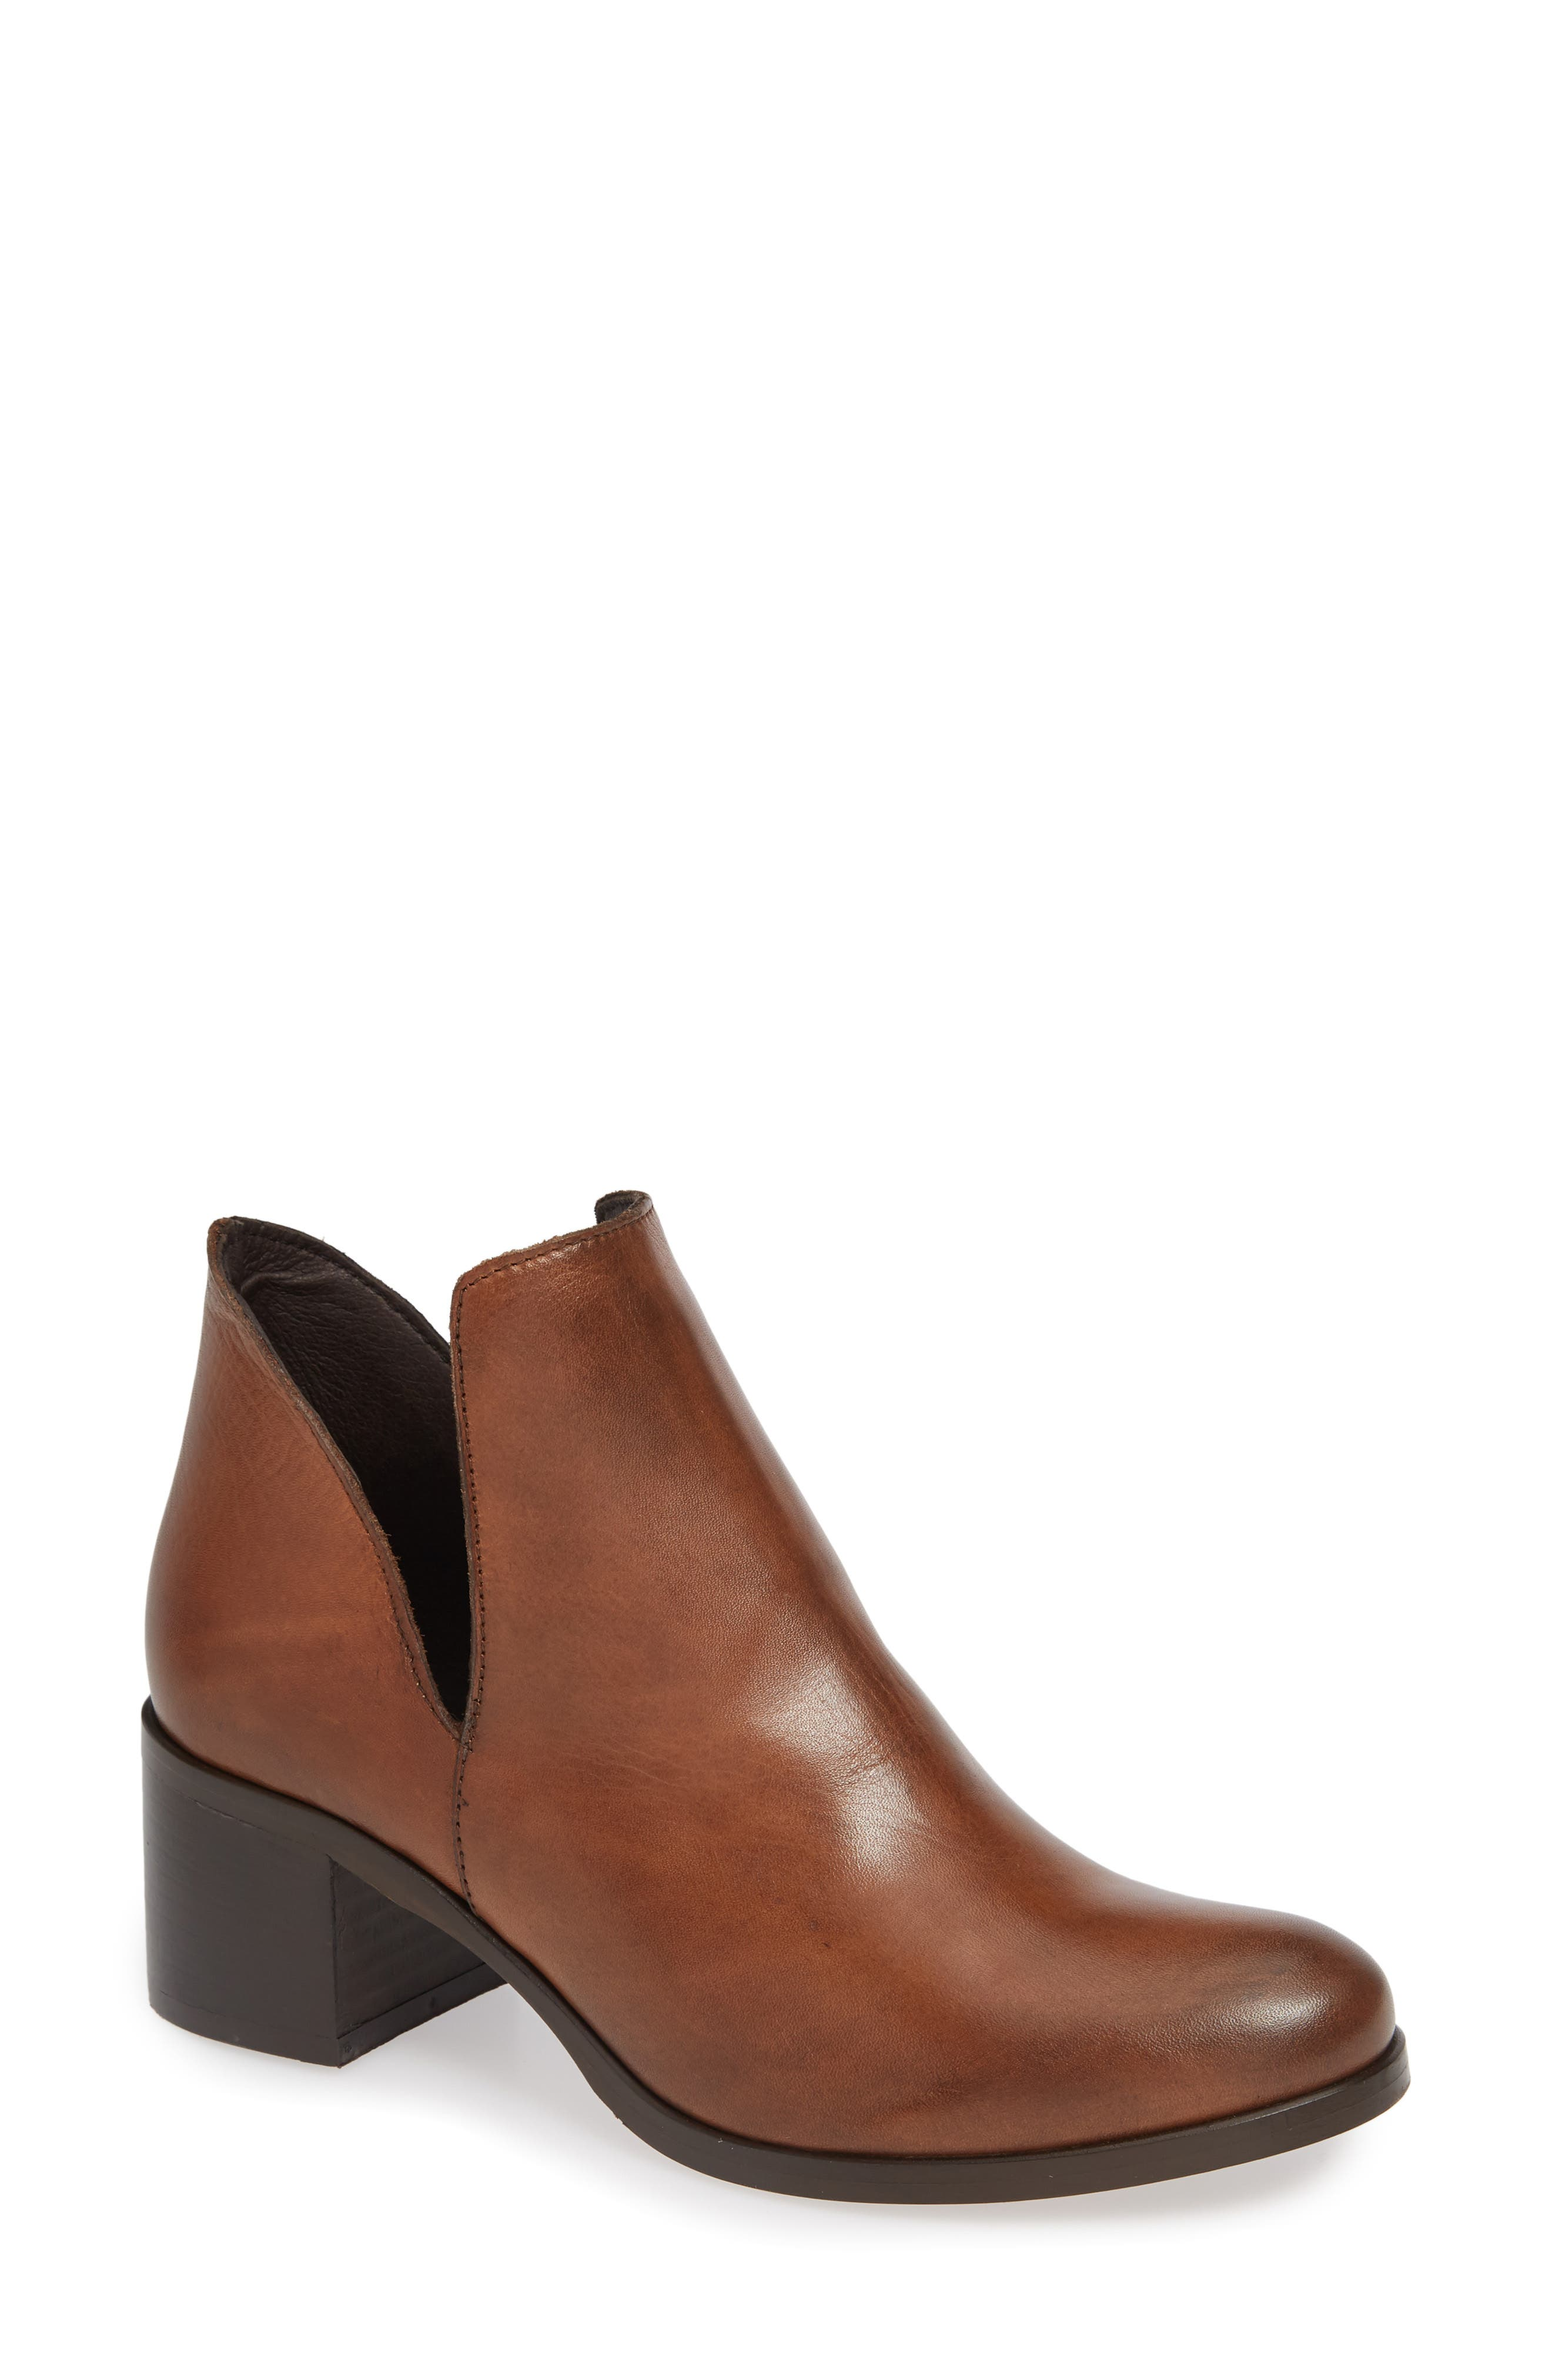 Cordani Barrett Bootie - Brown